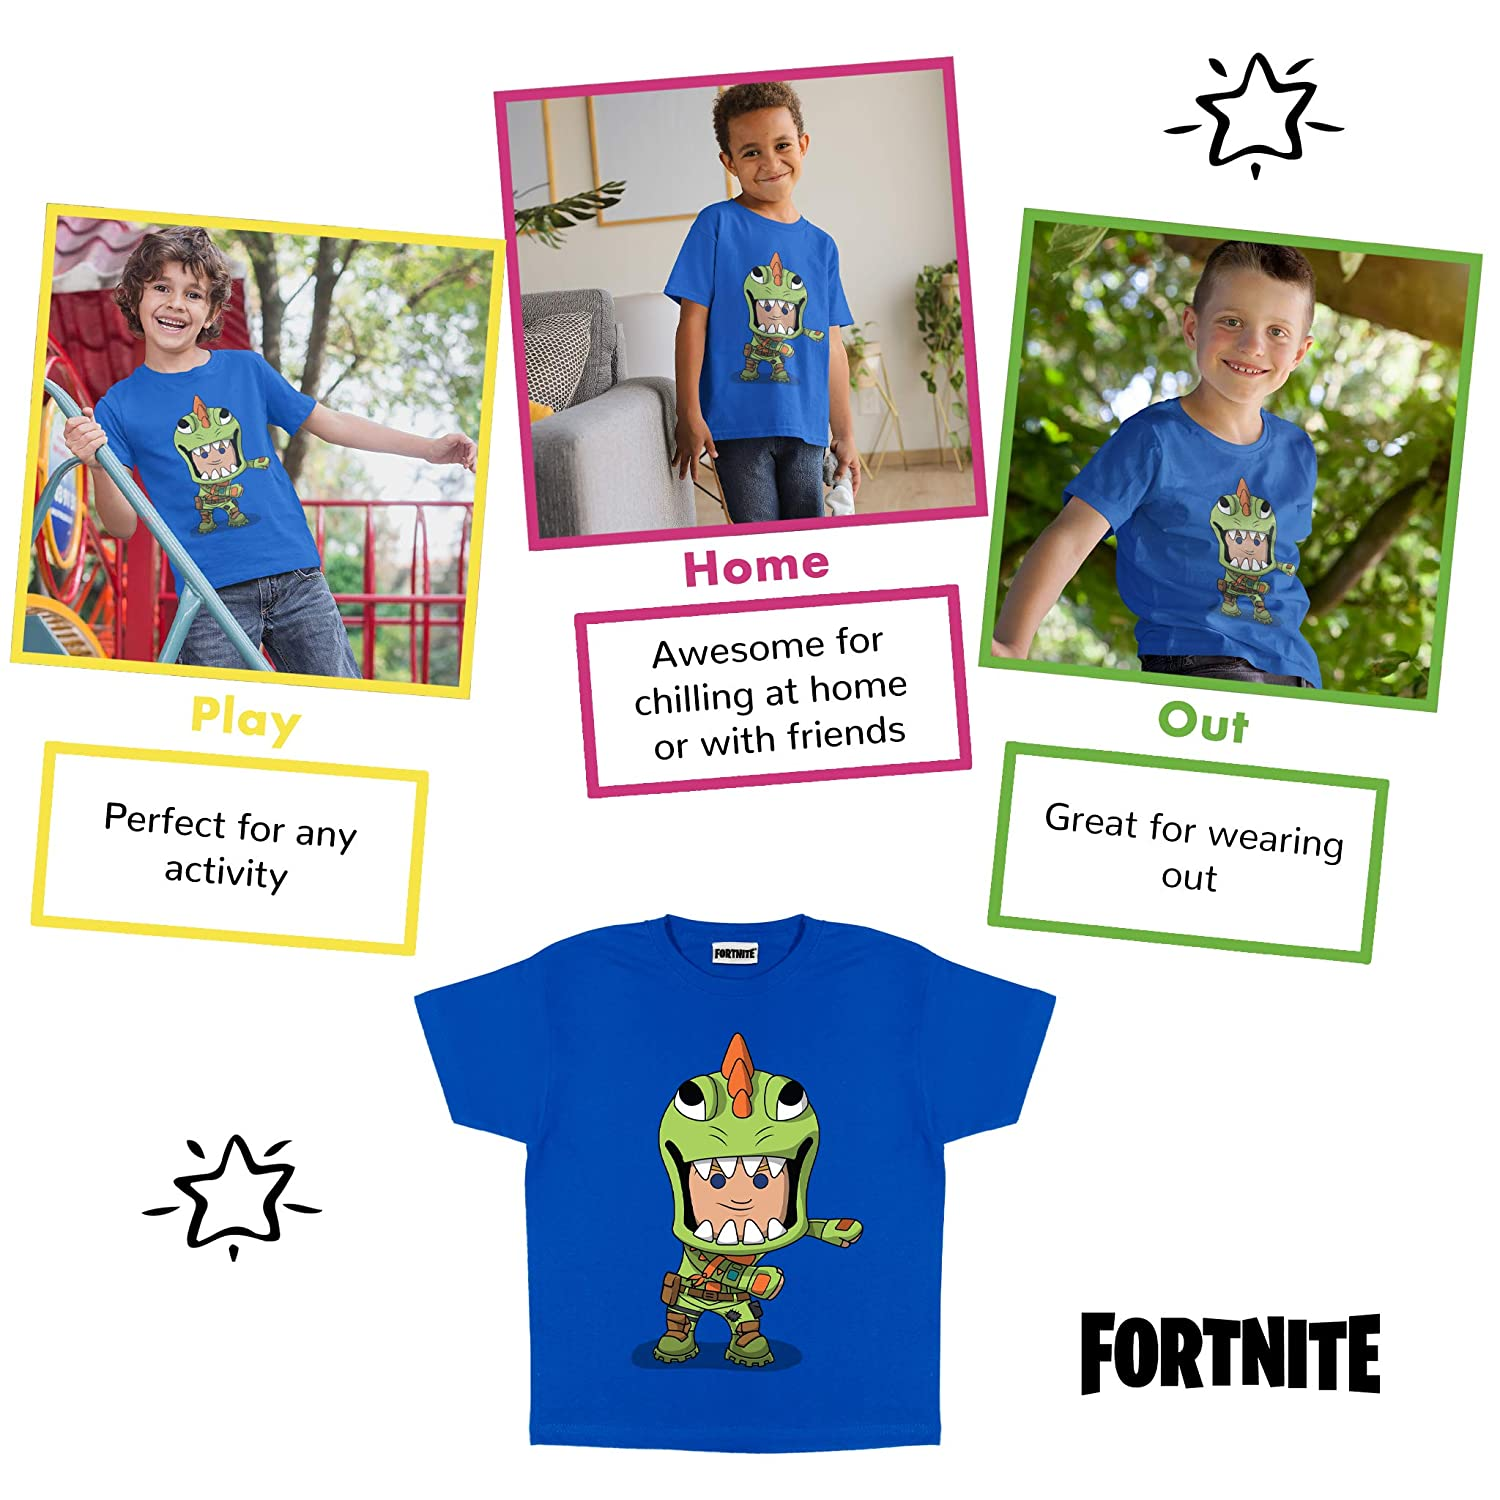 Childrens Clothes PS4 PS5 Xbox PC Gamer Gifts Official Merchandise Tween Teen School Boys Gaming Top Fortnite Flossing Rex Boys T-Shirt Kids Birthday Gift Idea